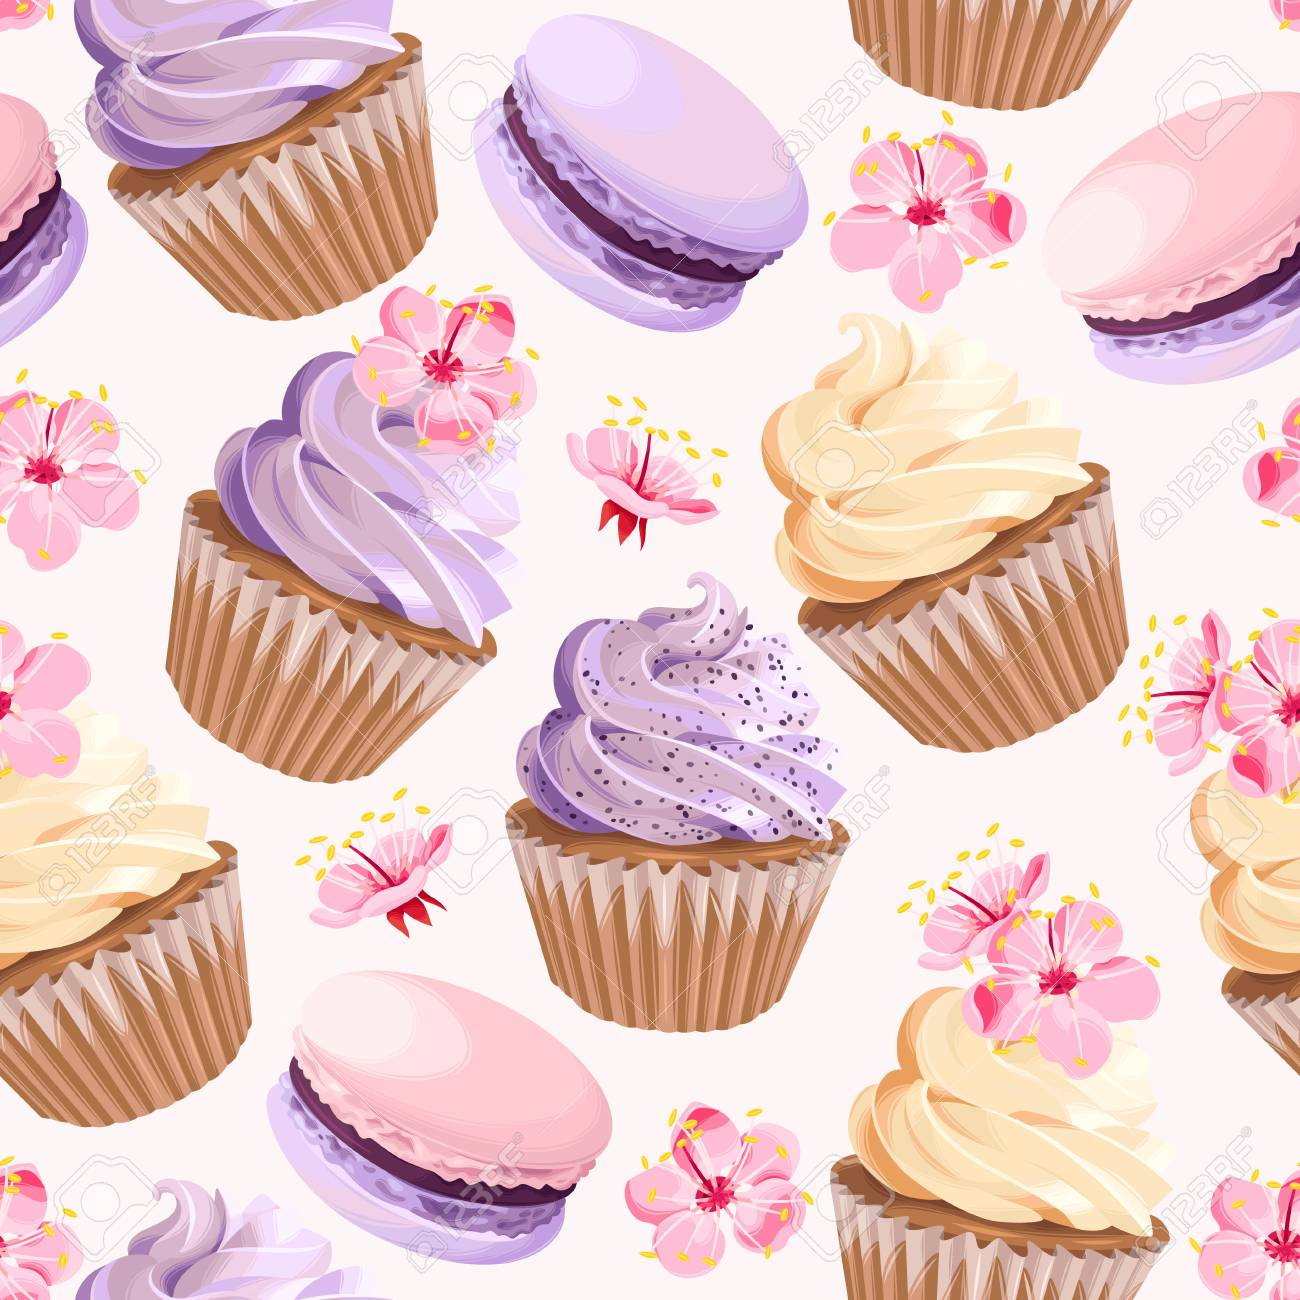 Seamless cupcakes and flowers Vector illustration. - 91691583